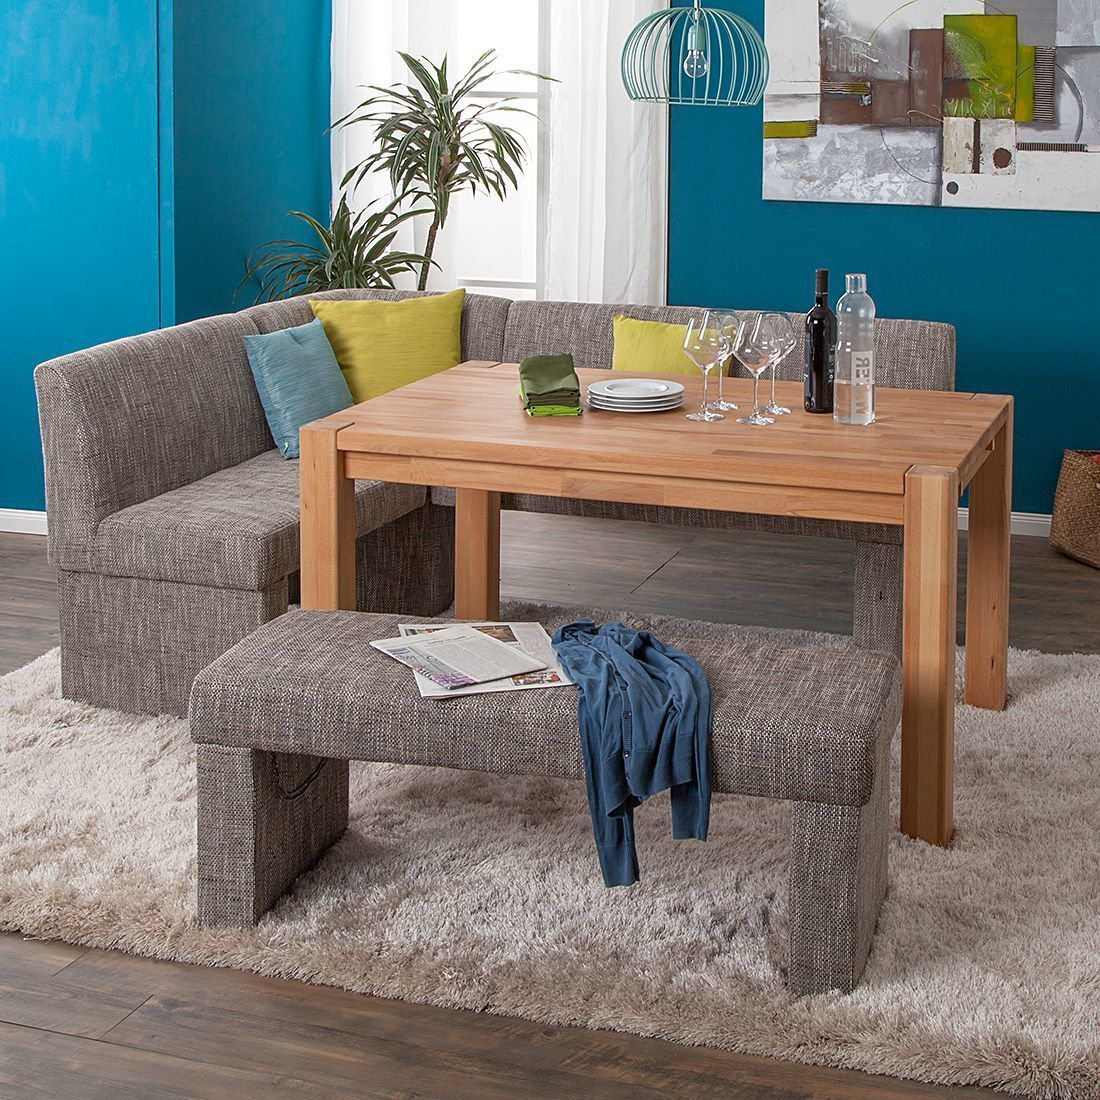 Eckbank Stoff Modern Deutsche Pinterest Furniture Table And